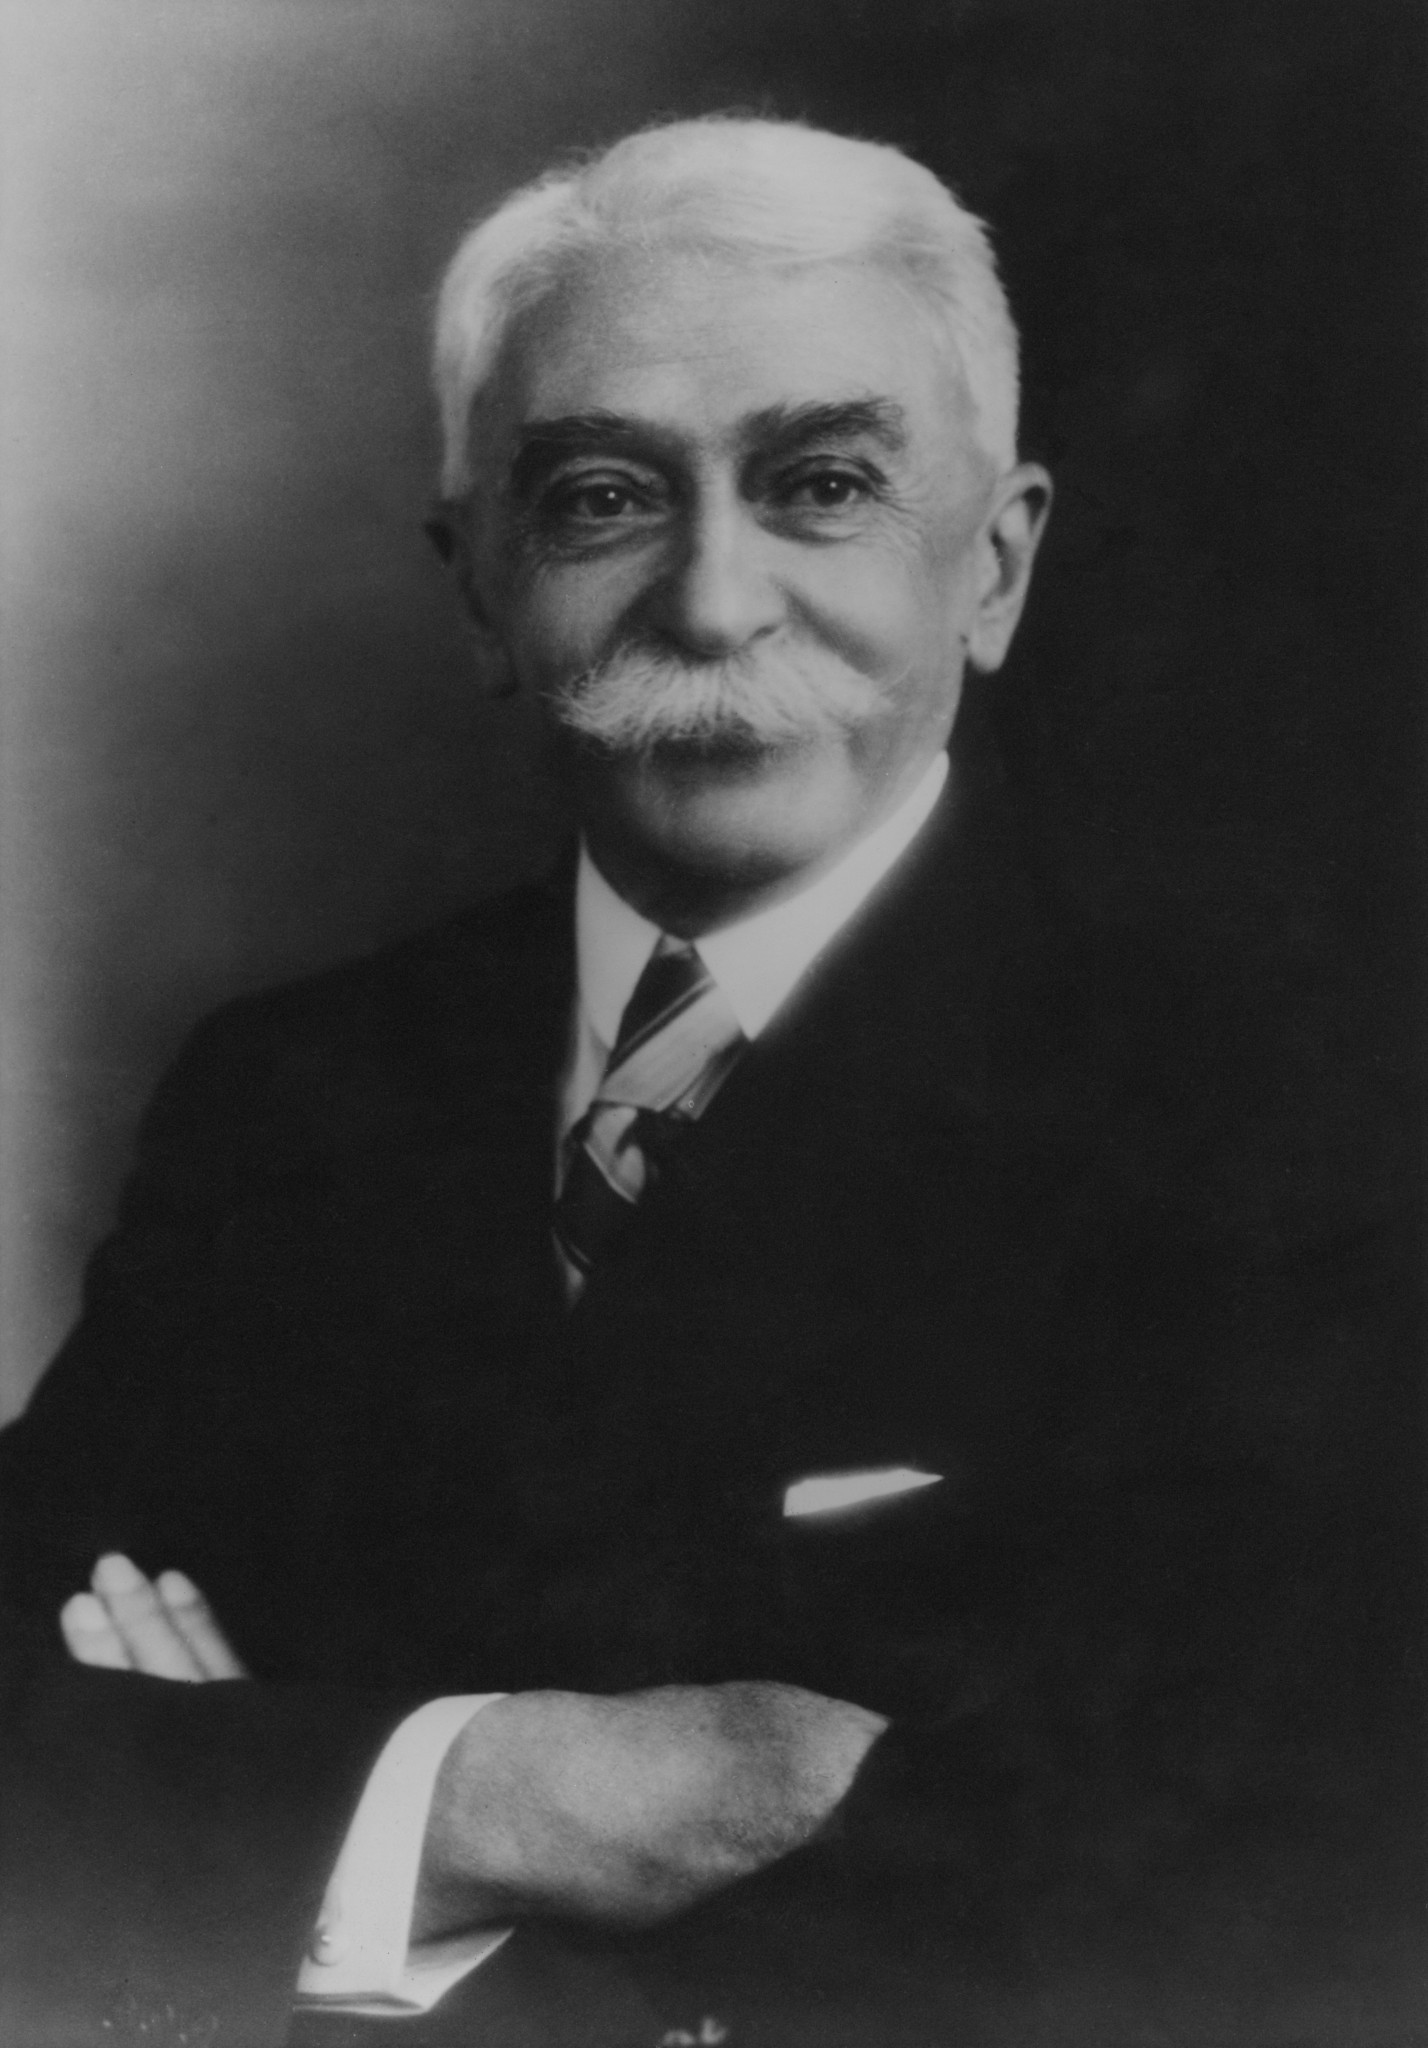 Baron Pierre de Coubertin, circa 1925. Fox Photos/Hulton Archive/Getty Images